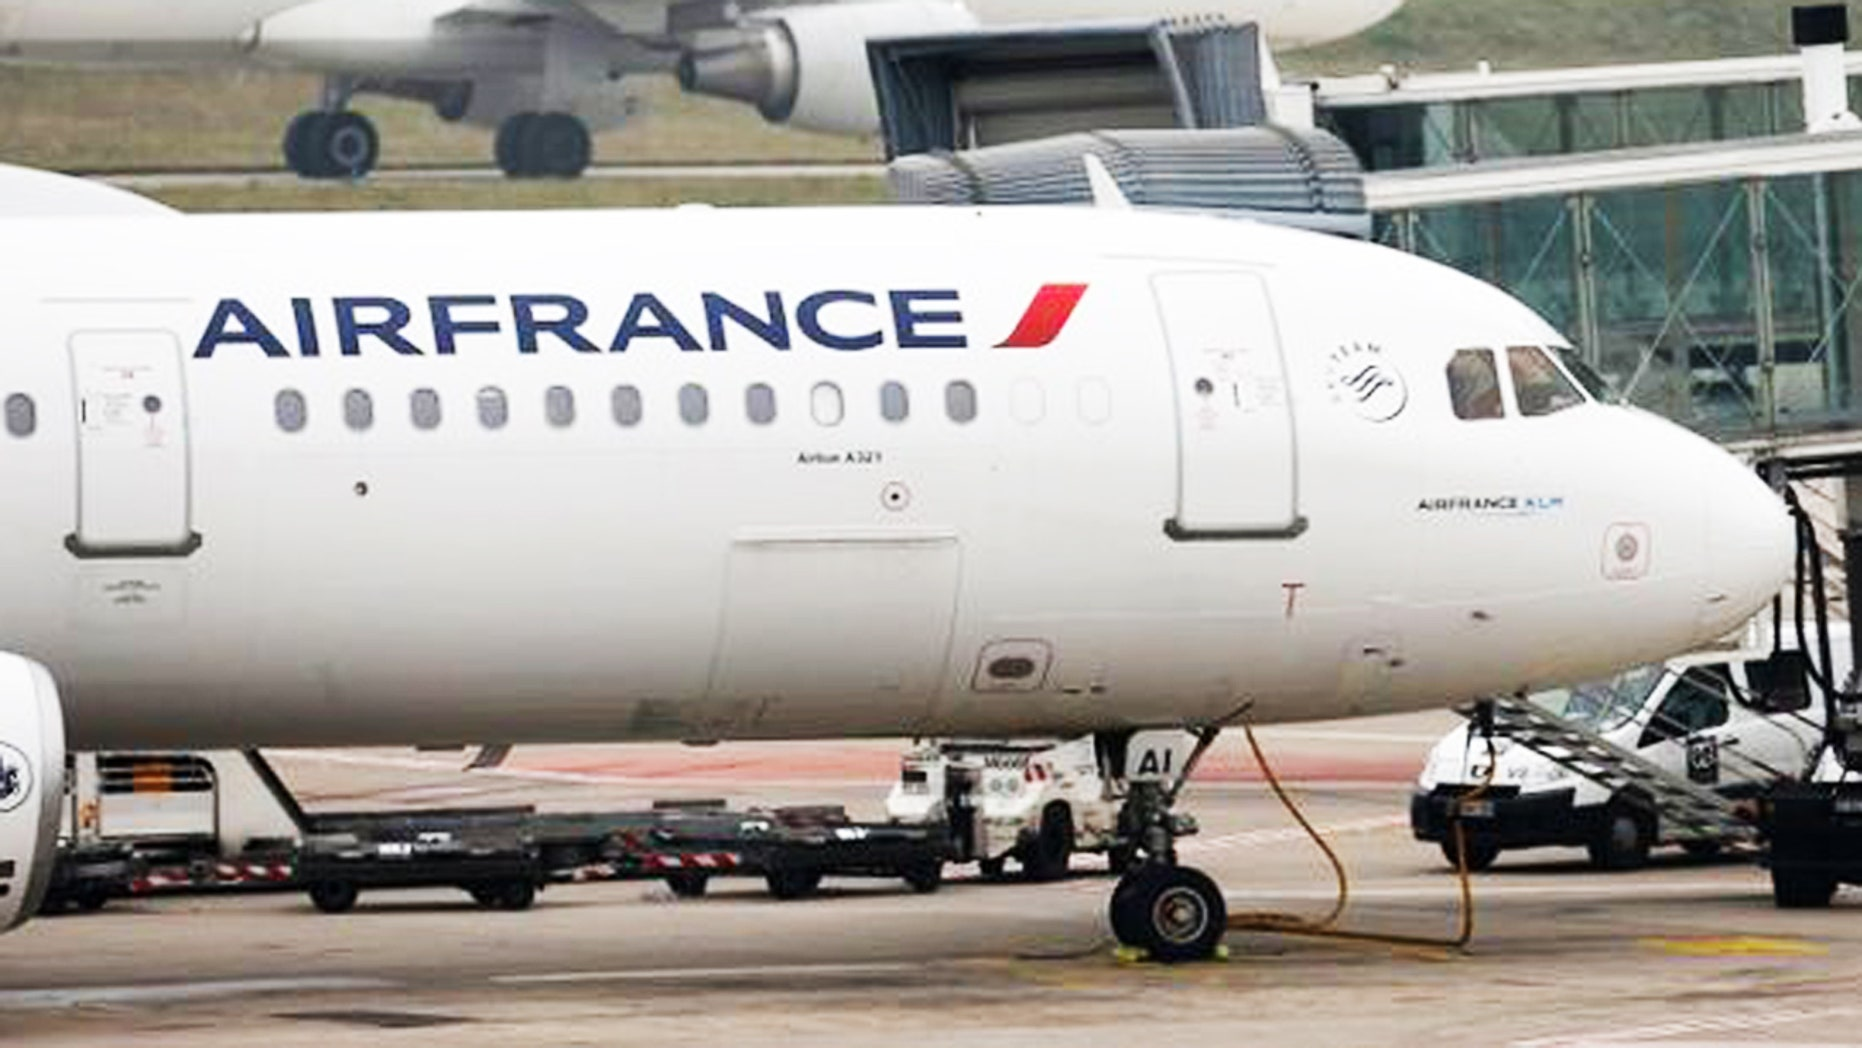 Air France says female flight attendants will not be penalized for refusing to fly to Tehran.